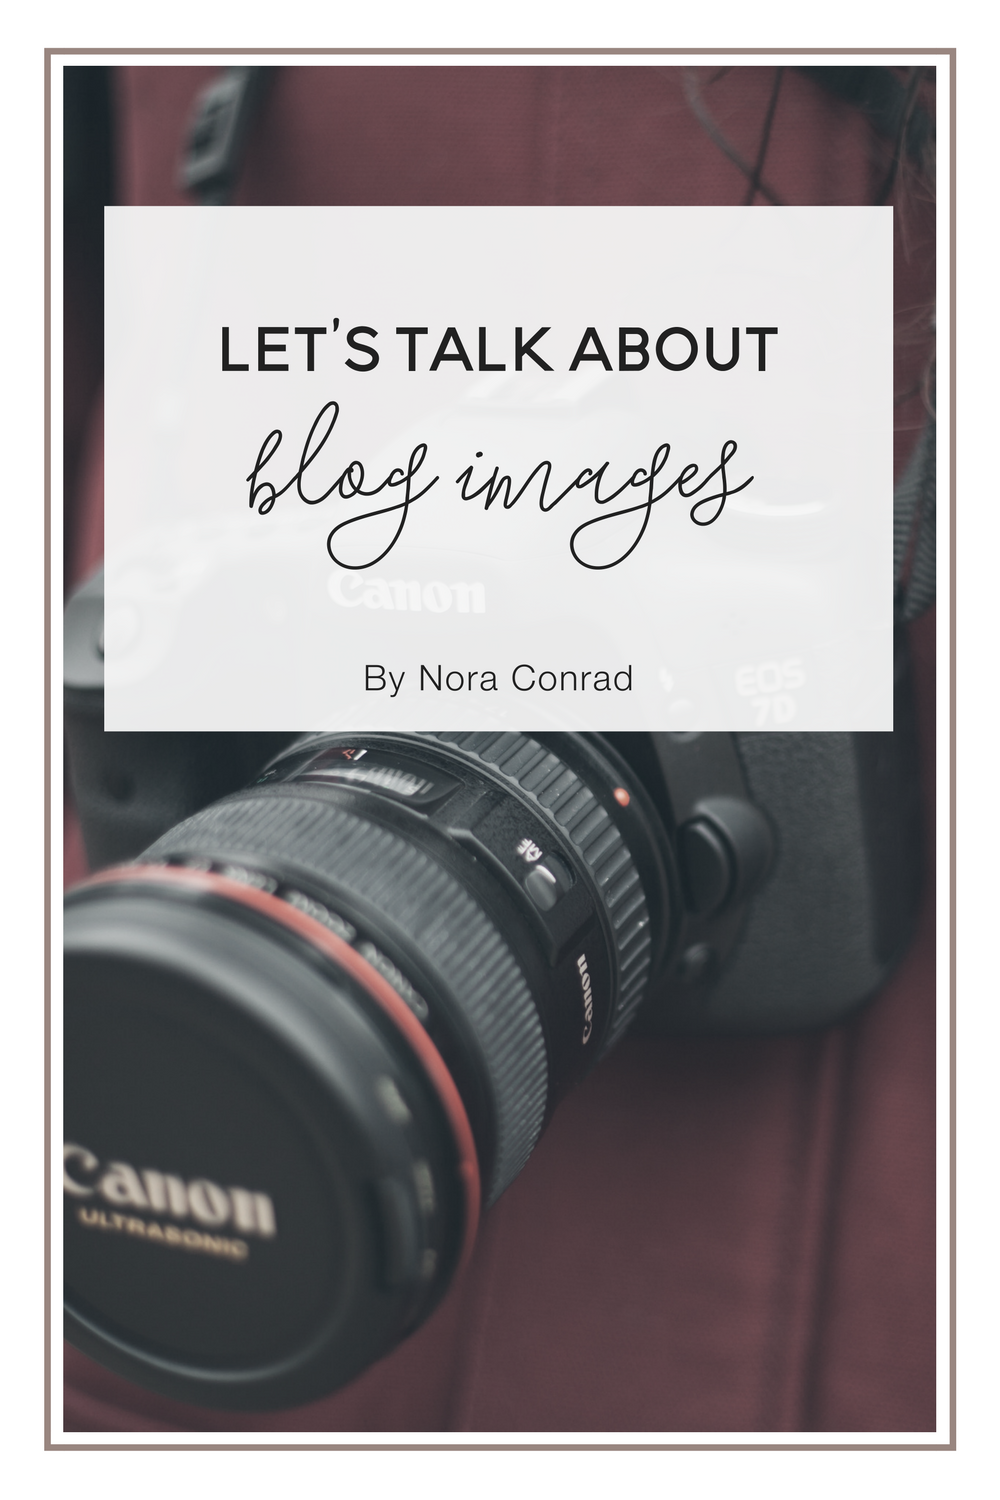 Images are so important for bloggers and business owners. They draw visitors into your site and keep your content visually engaging. This post is a guide to finding beautiful images, editing and optimizing them for your site.